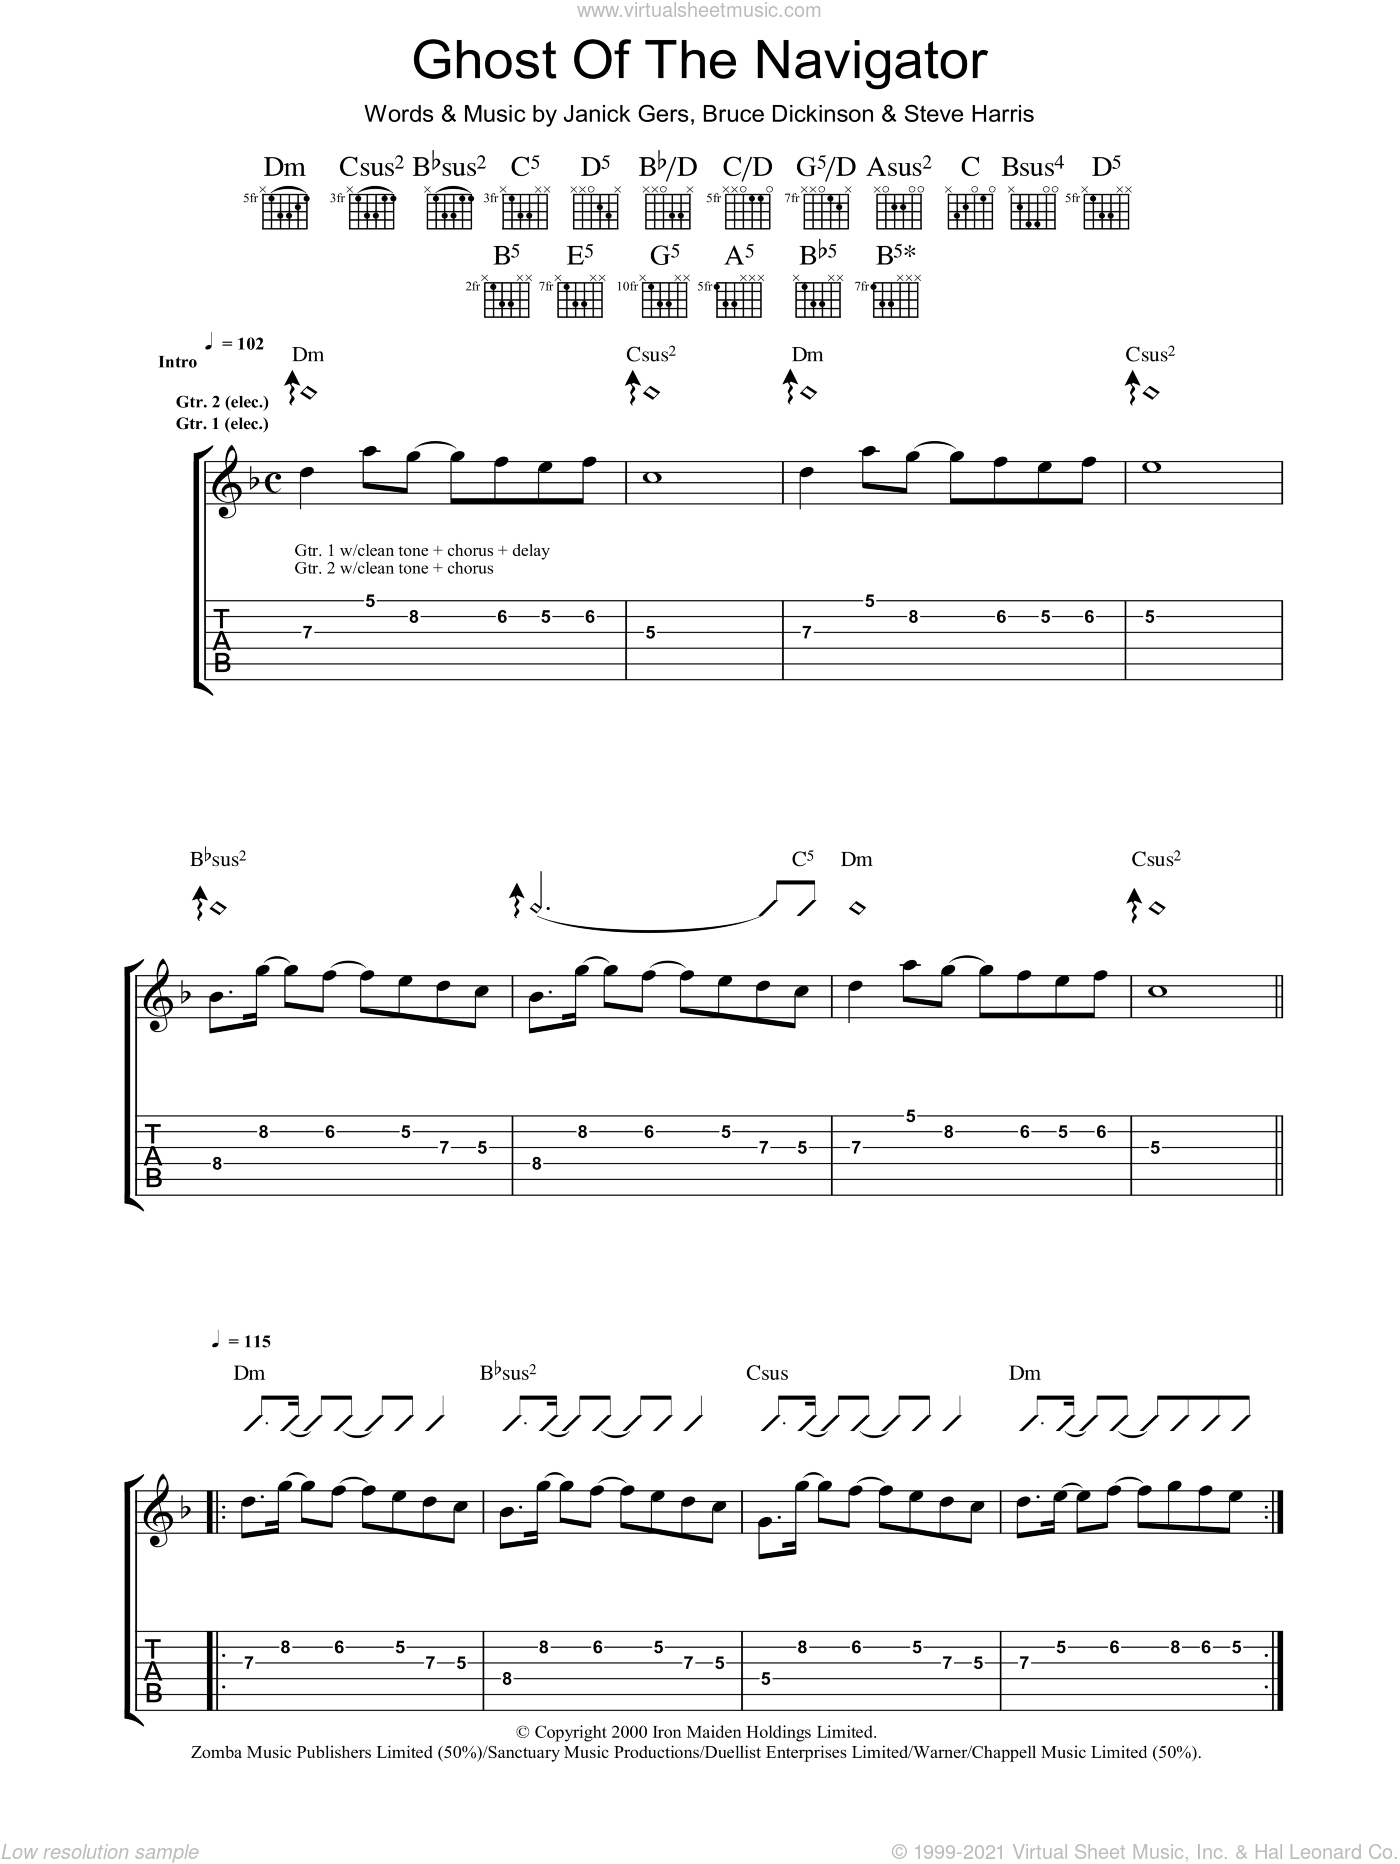 Ghost Of The Navigator sheet music for guitar (tablature) by Steve Harris